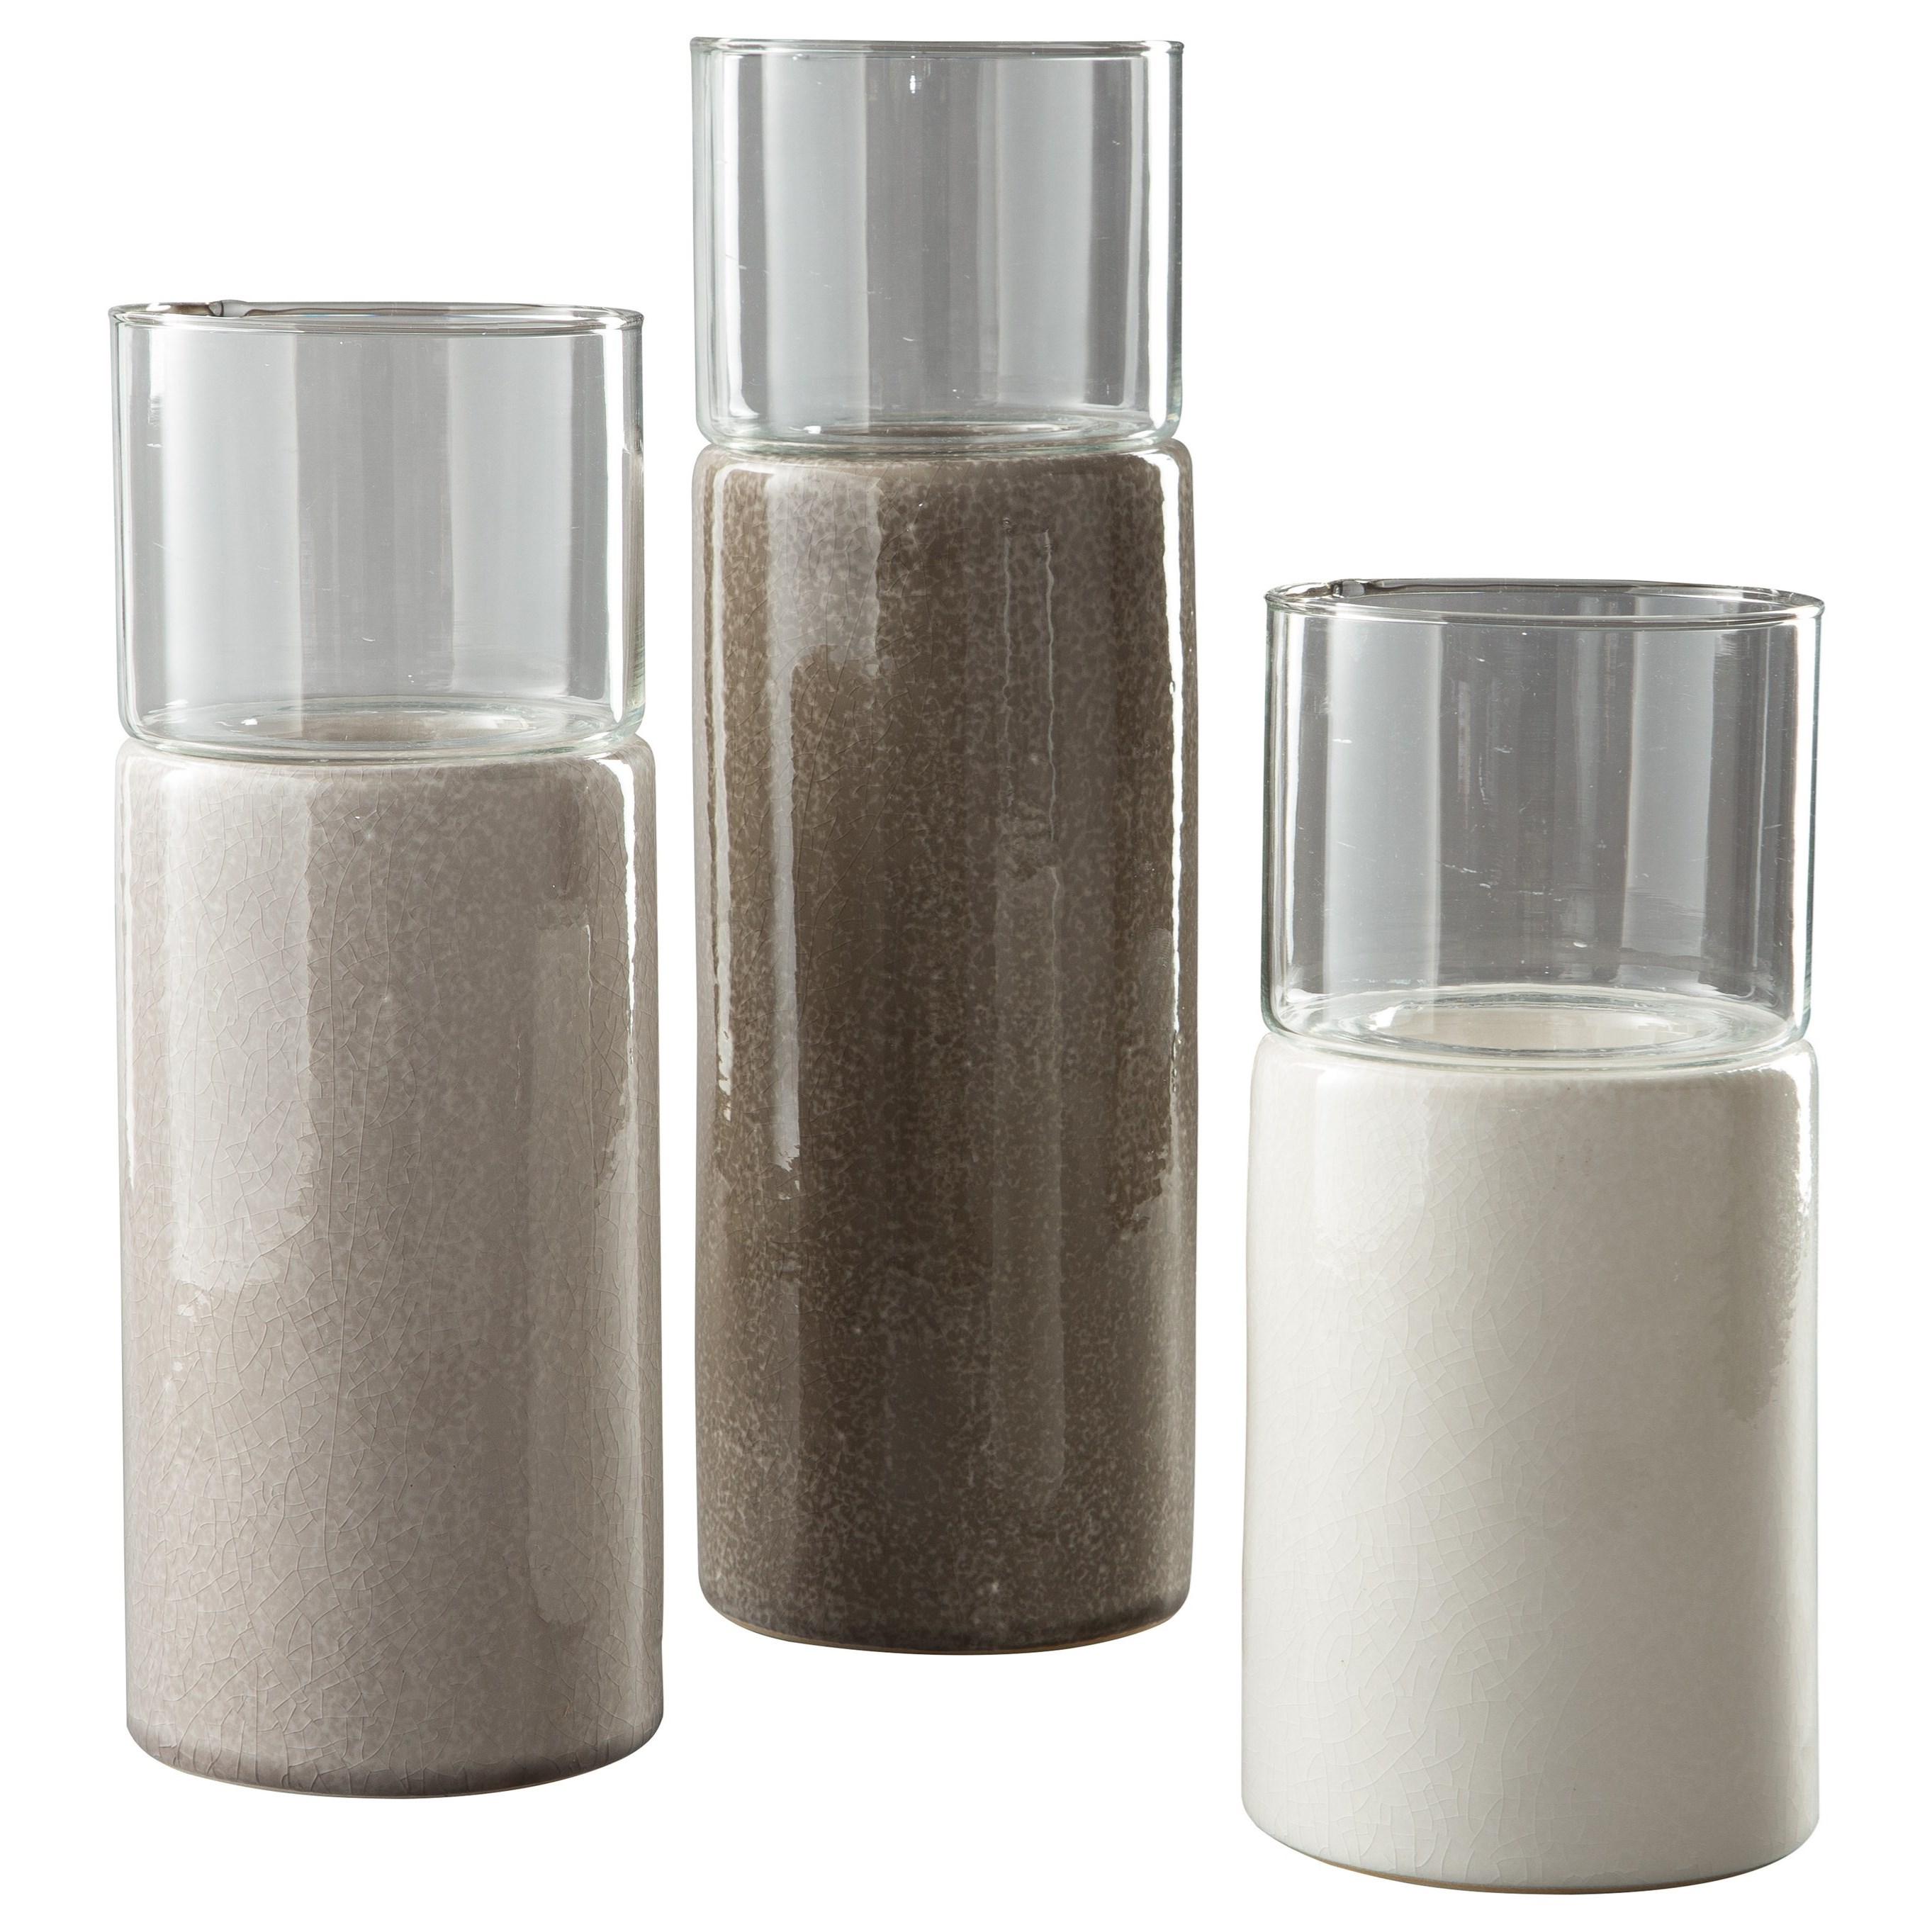 Accents Deus Gray/White/Brown Candle Holder Set by Signature Design by Ashley at Coconis Furniture & Mattress 1st